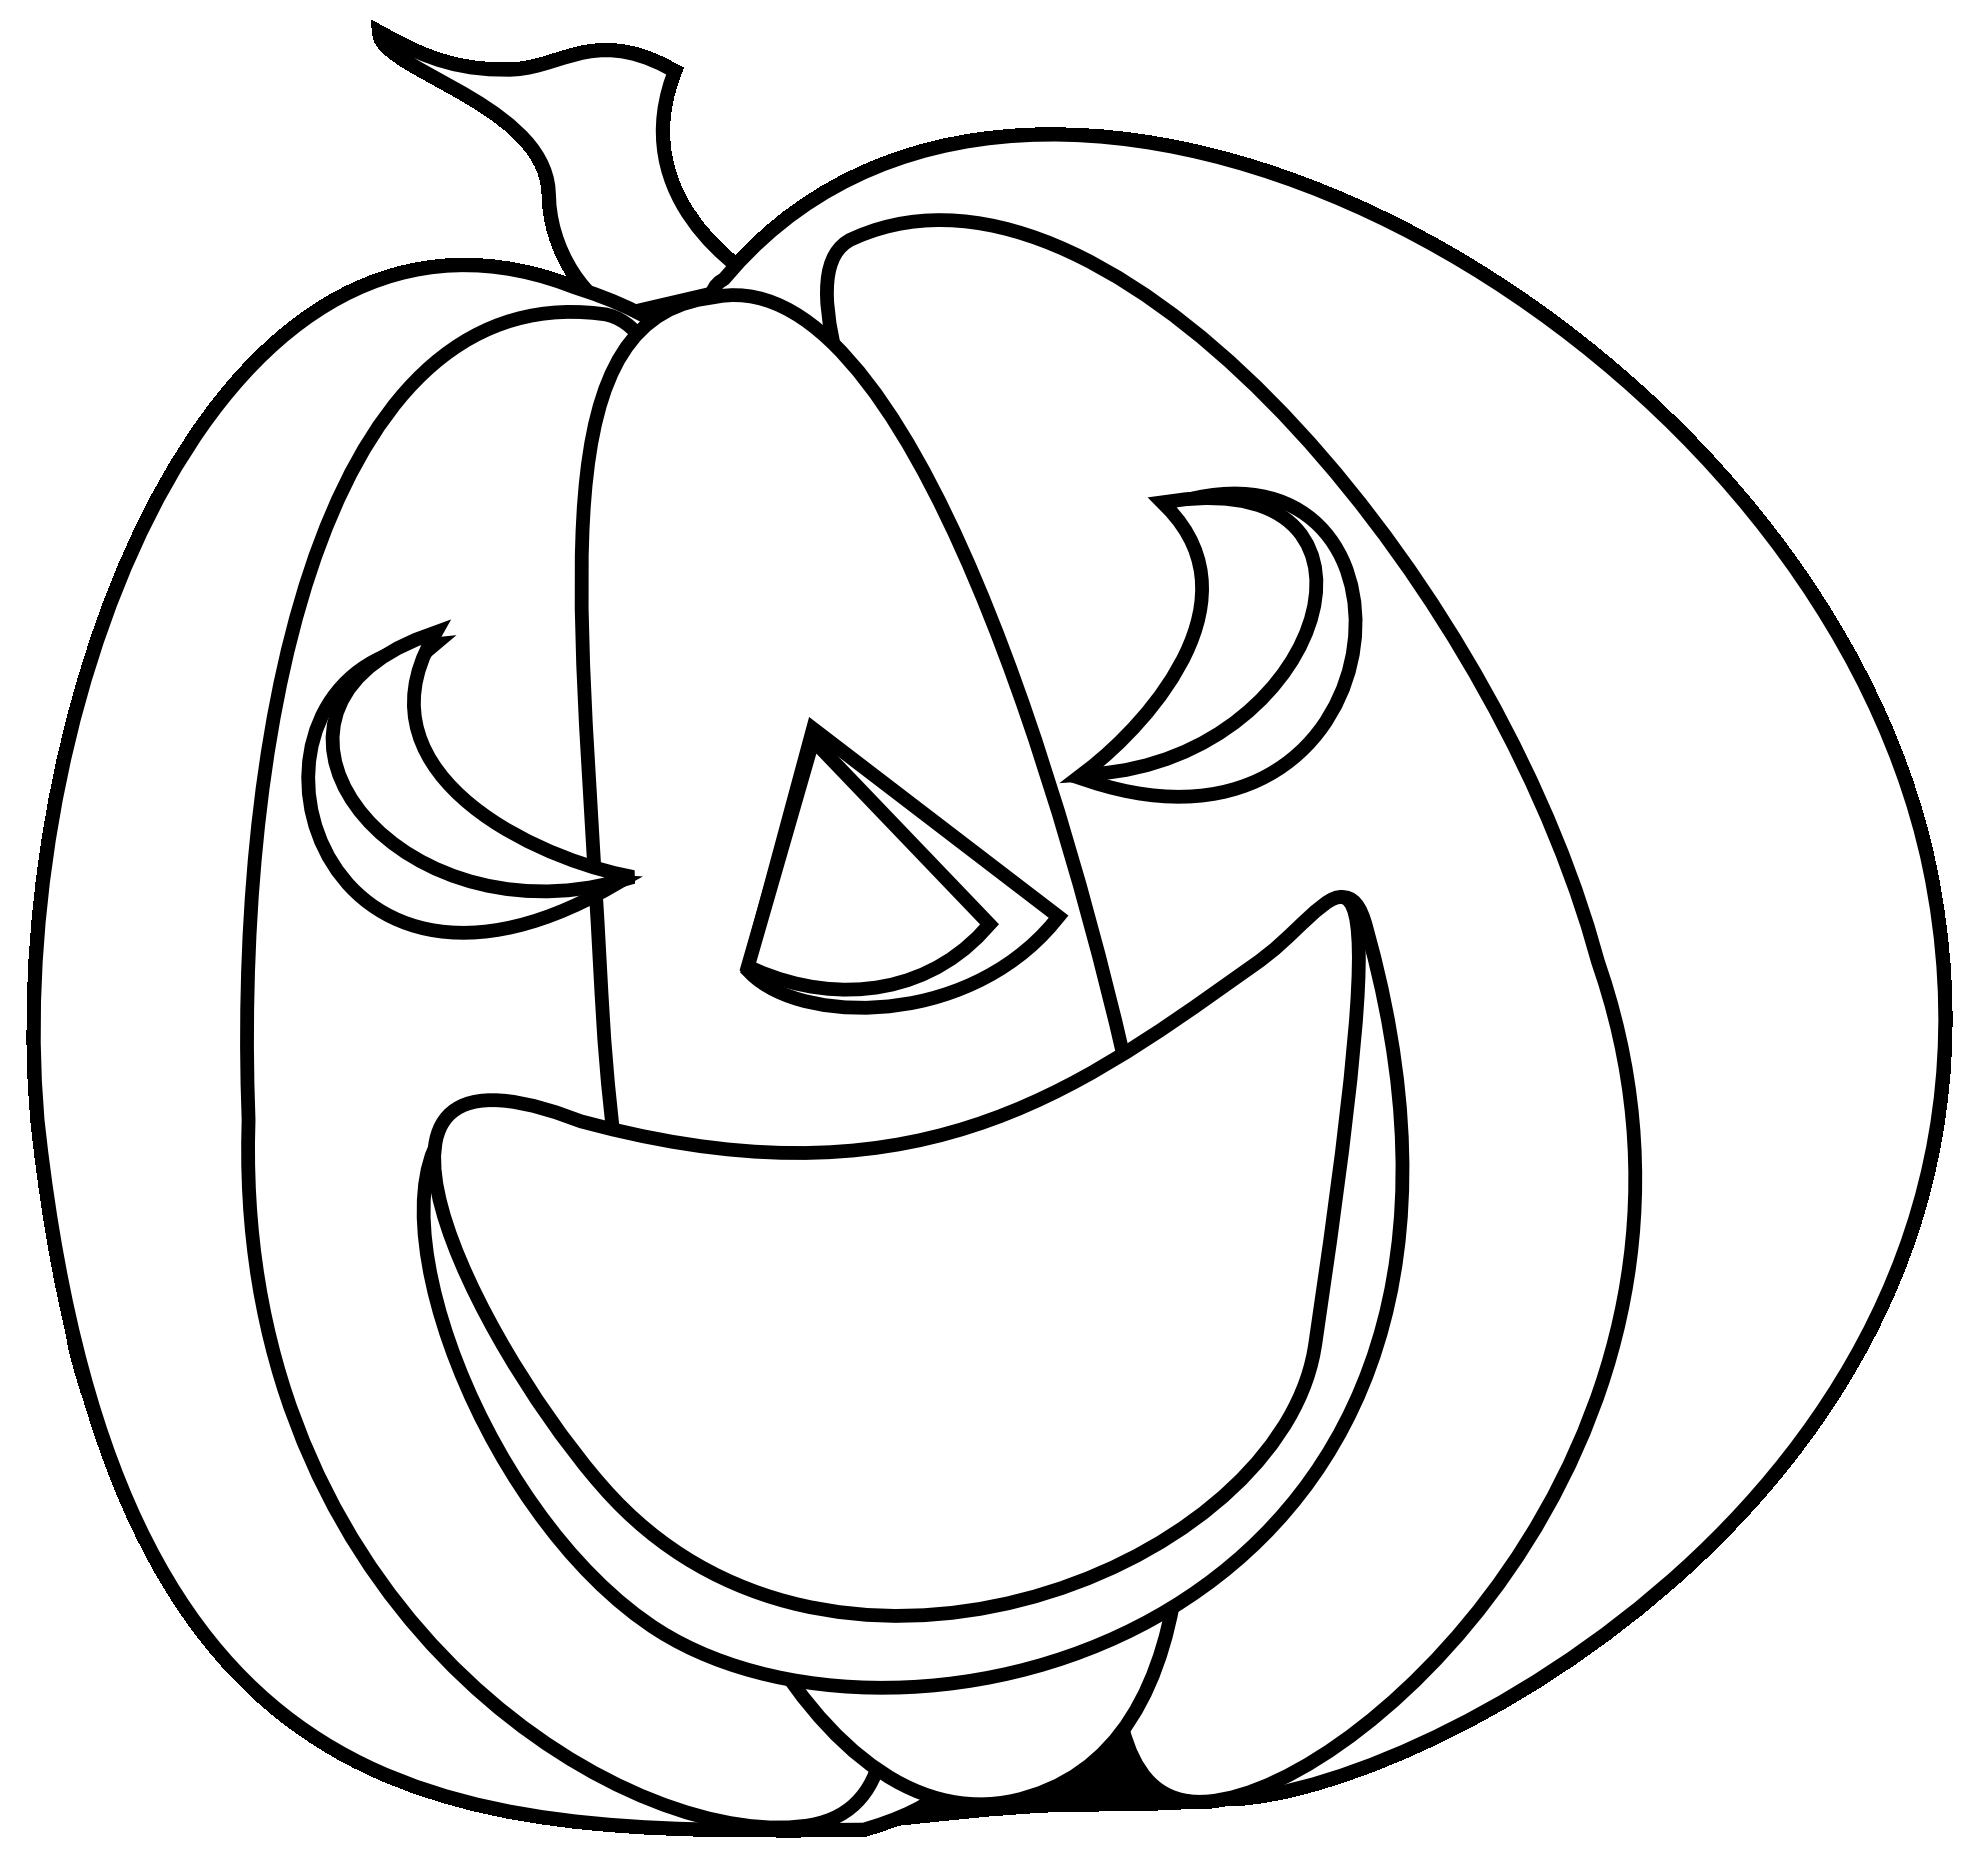 Pumpkin Black And White Clipart